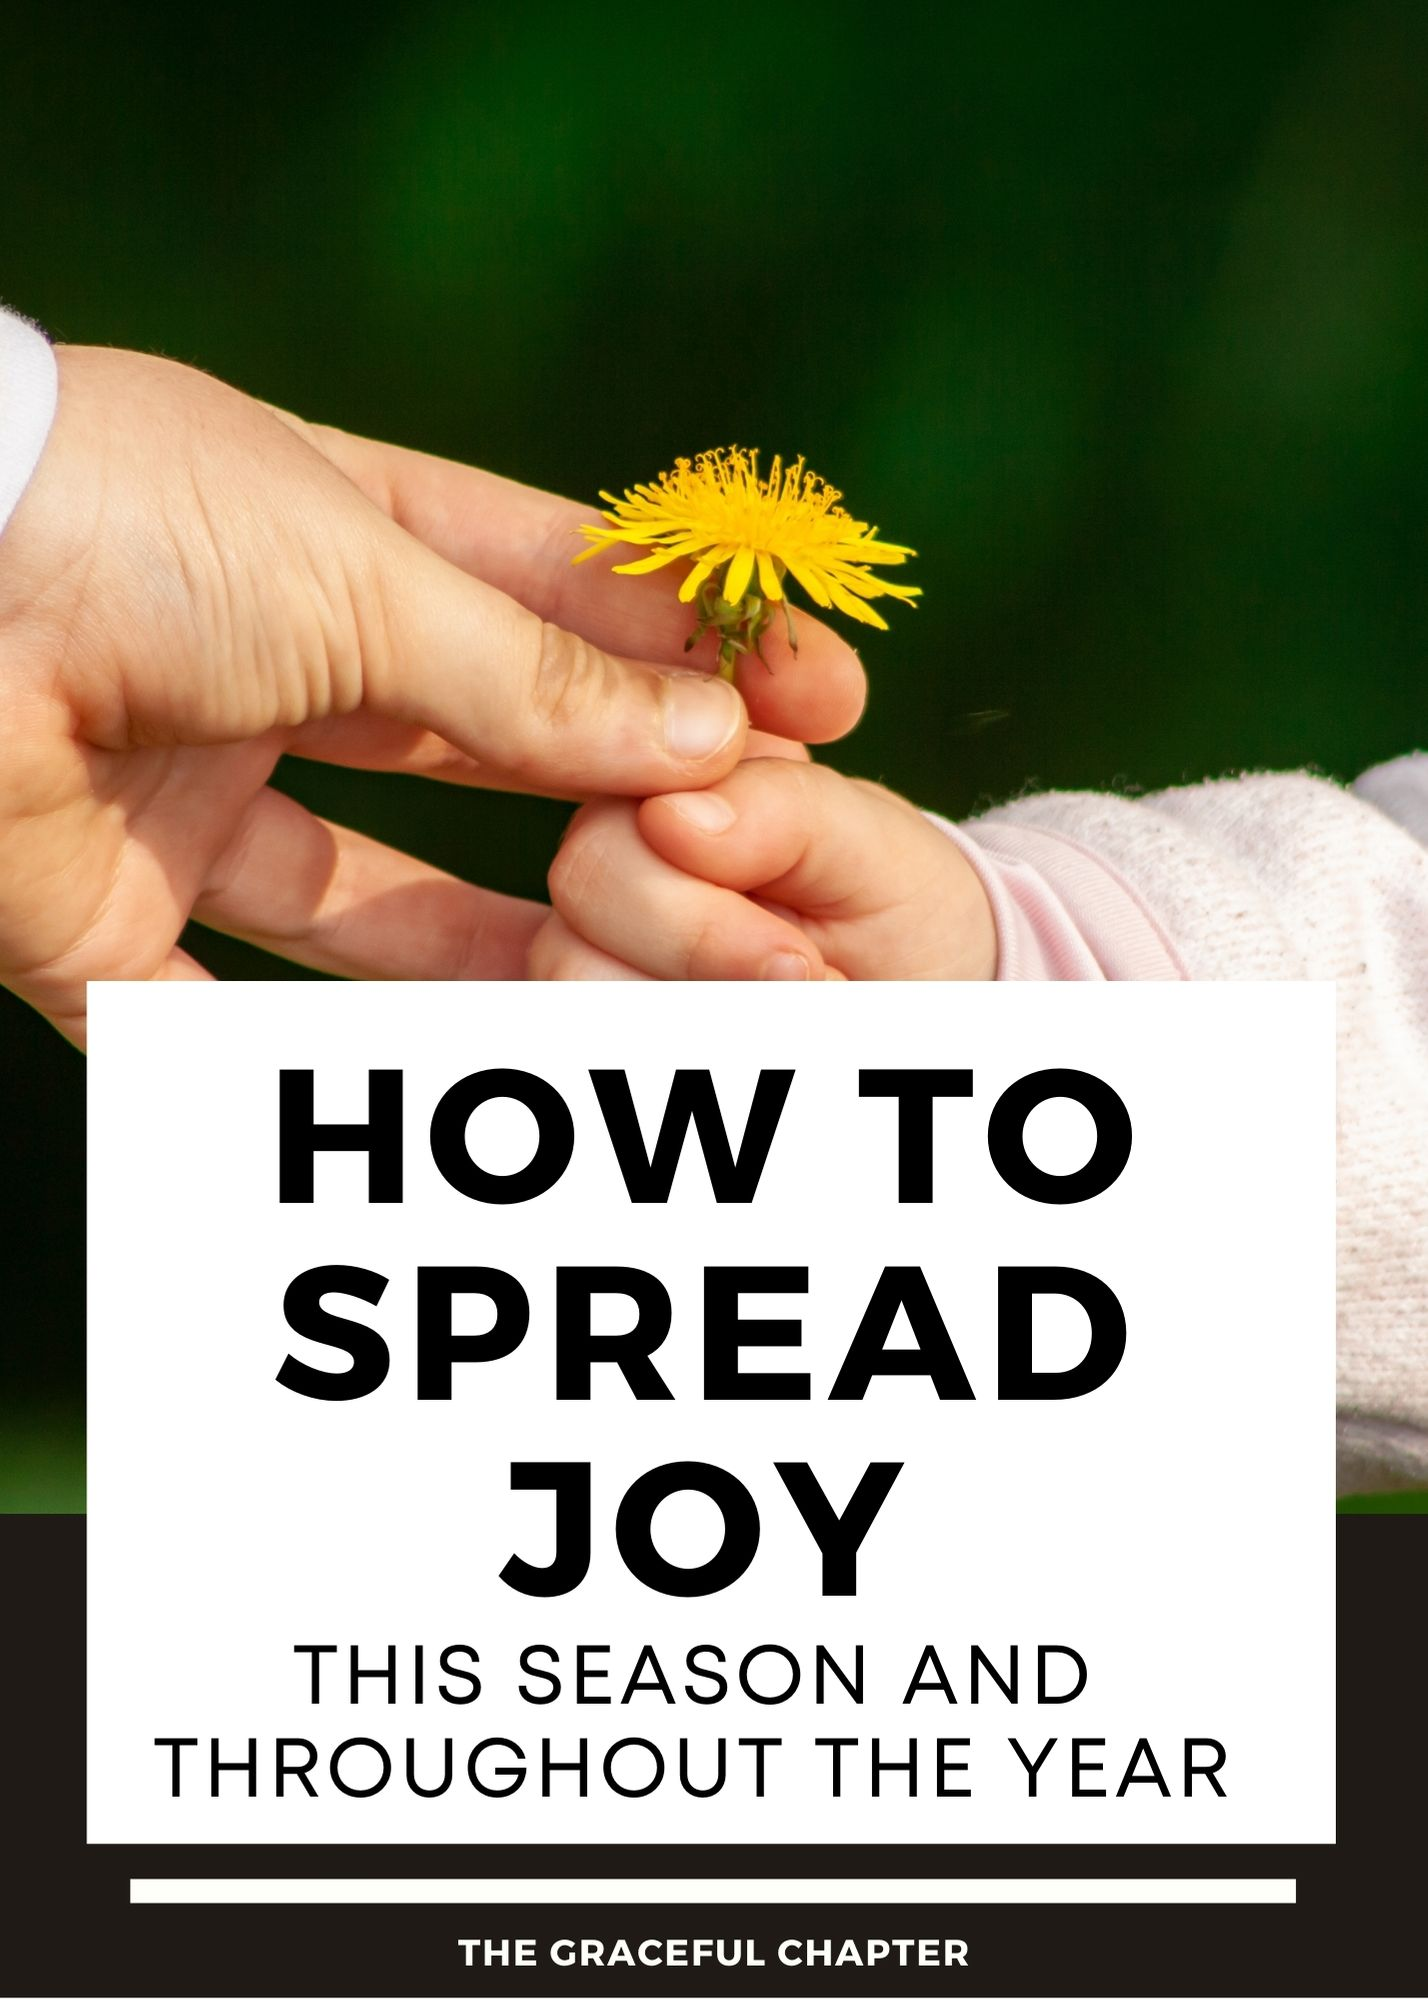 How to spread joy this season and throughout the year